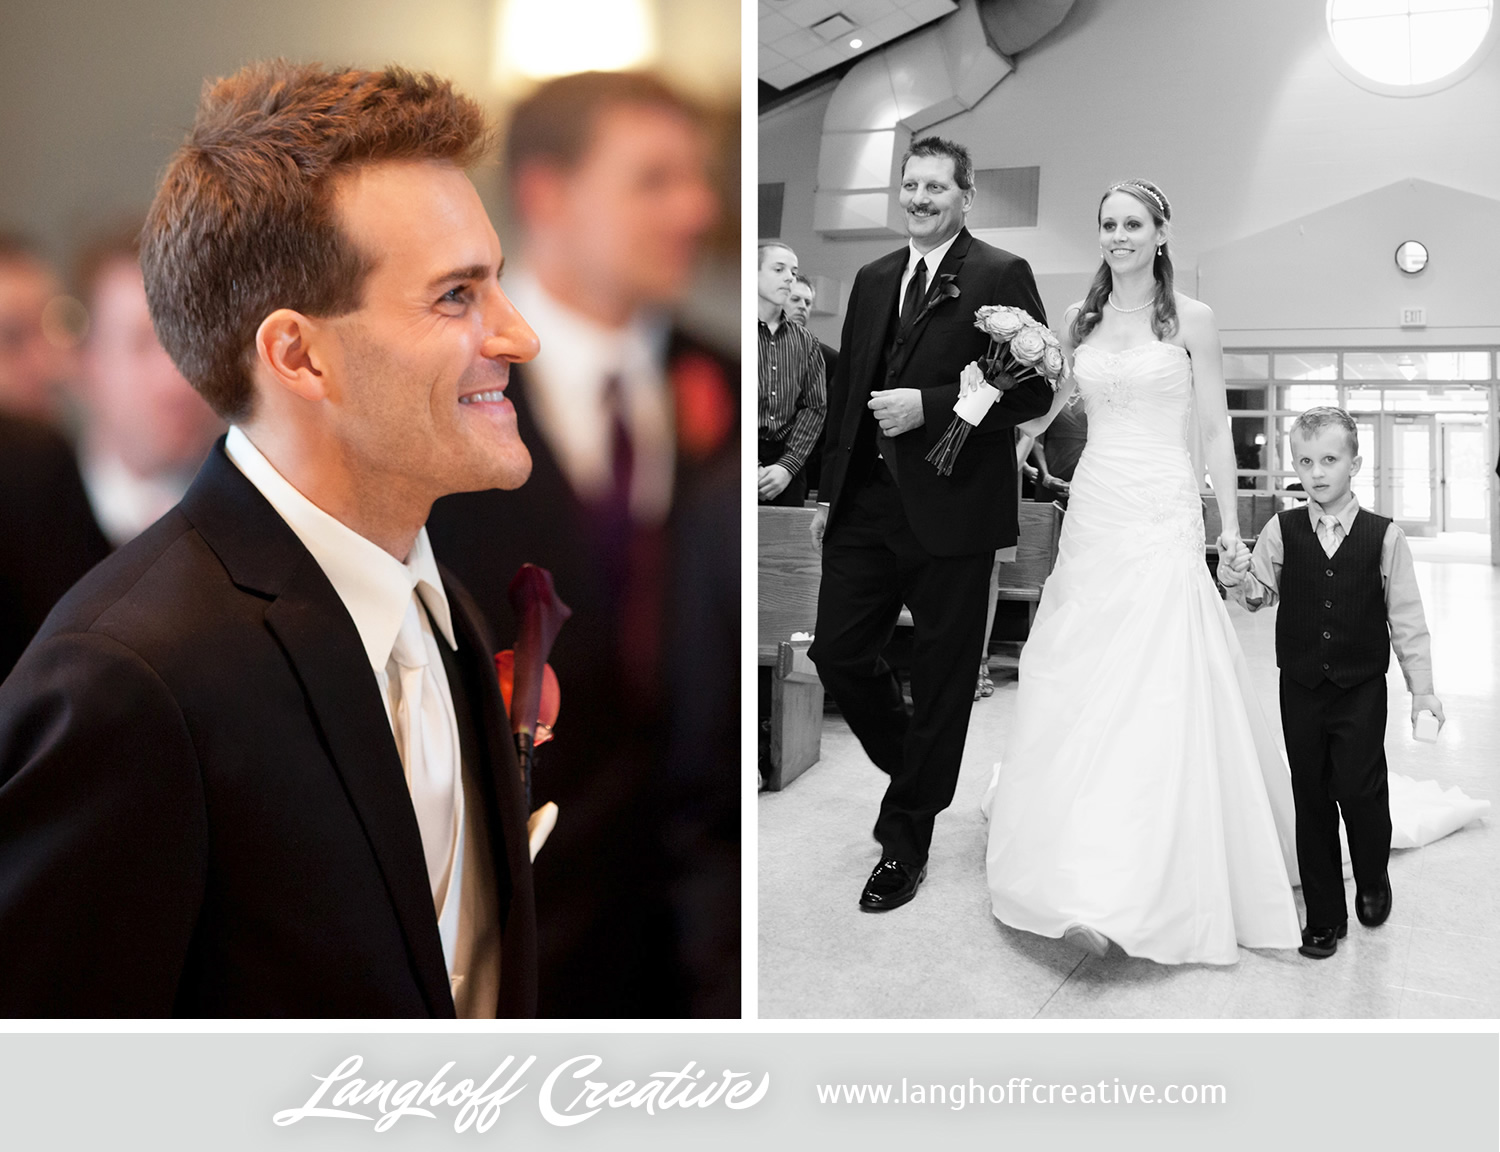 PlainfieldWedding-2013-LanghoffCreative-MattErin-16-photo.jpg